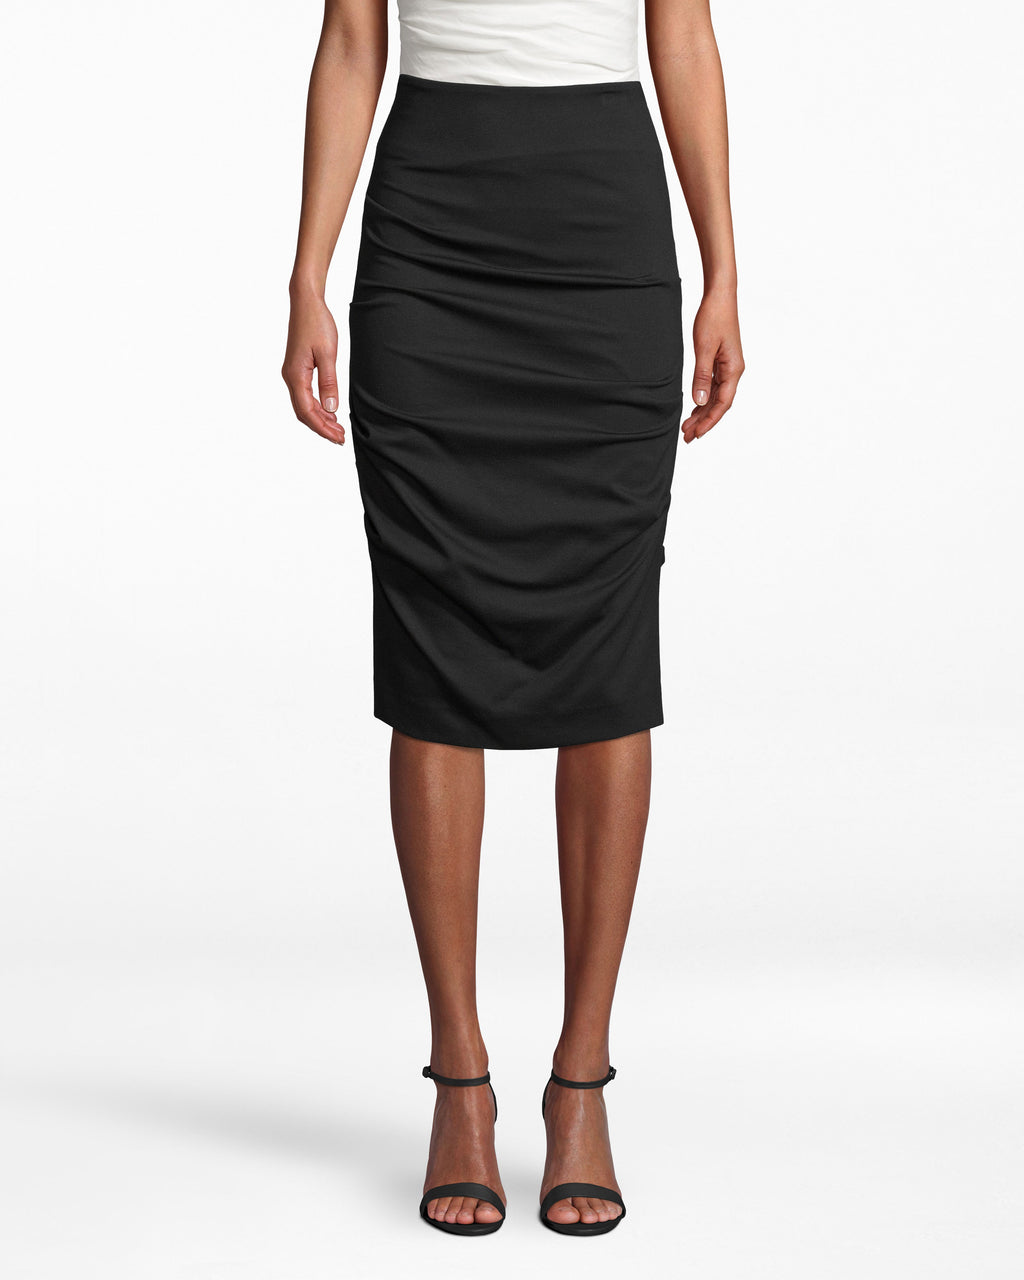 BA0515 - PONTE SKIRT - bottoms - skirts - She means business. Take this body-hugging ponte skirt to the office: the fabric gathers all over the silhouette to emphasize your frame.